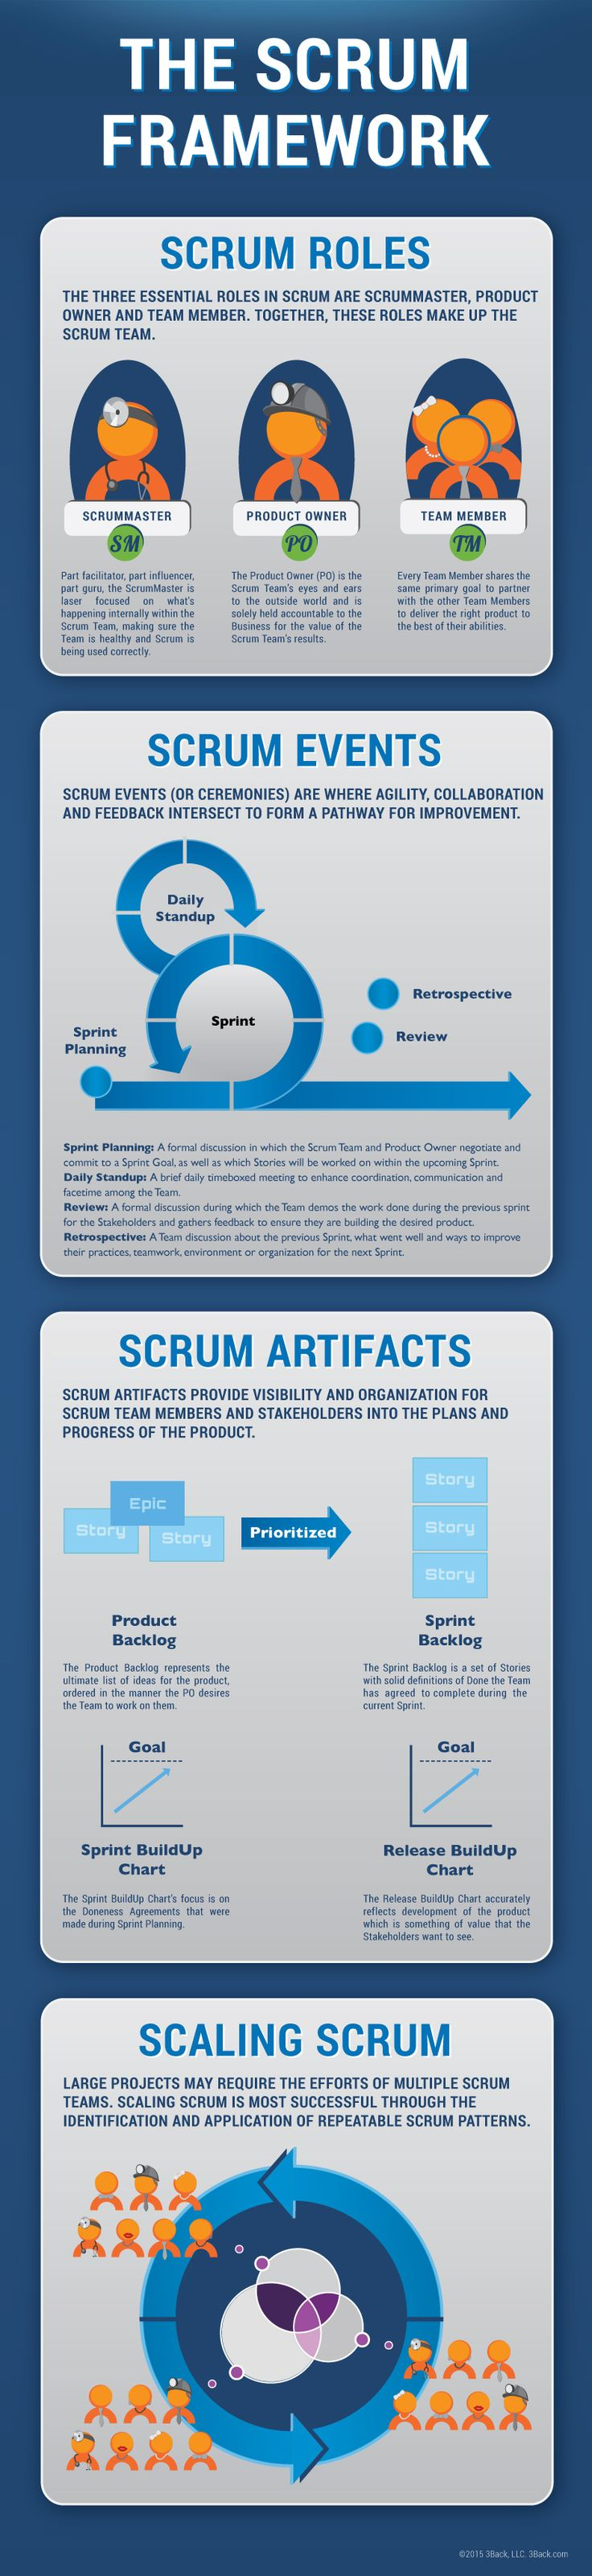 scrum software tools